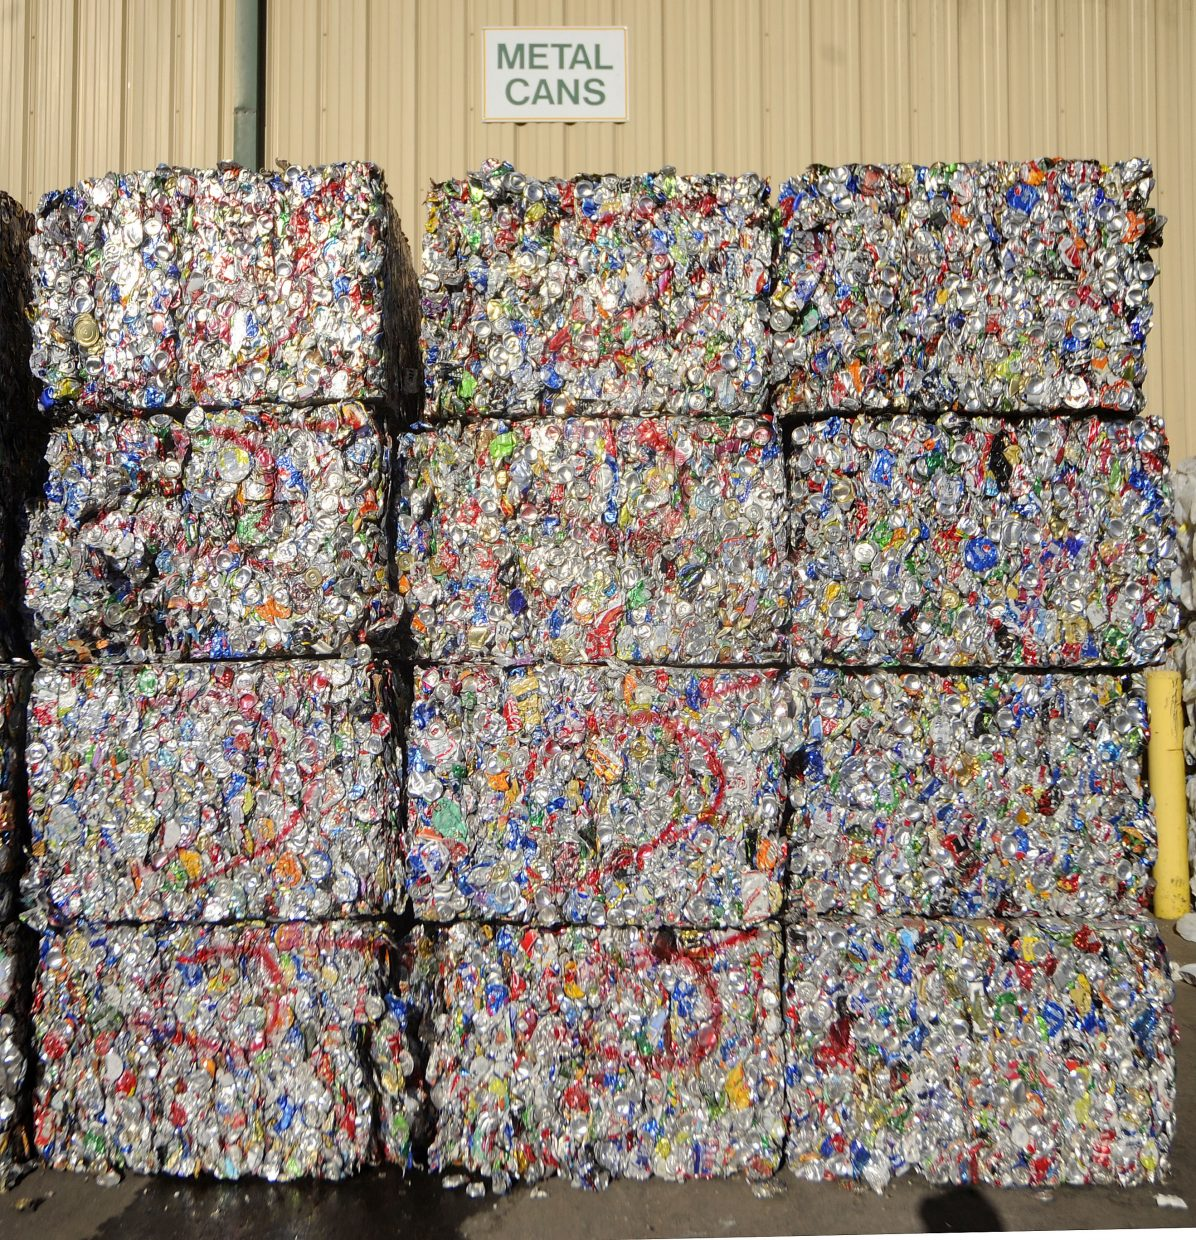 Bales of aluminum cans are stacked in the year at Waste Management's Franklin Street materials recovery facility.